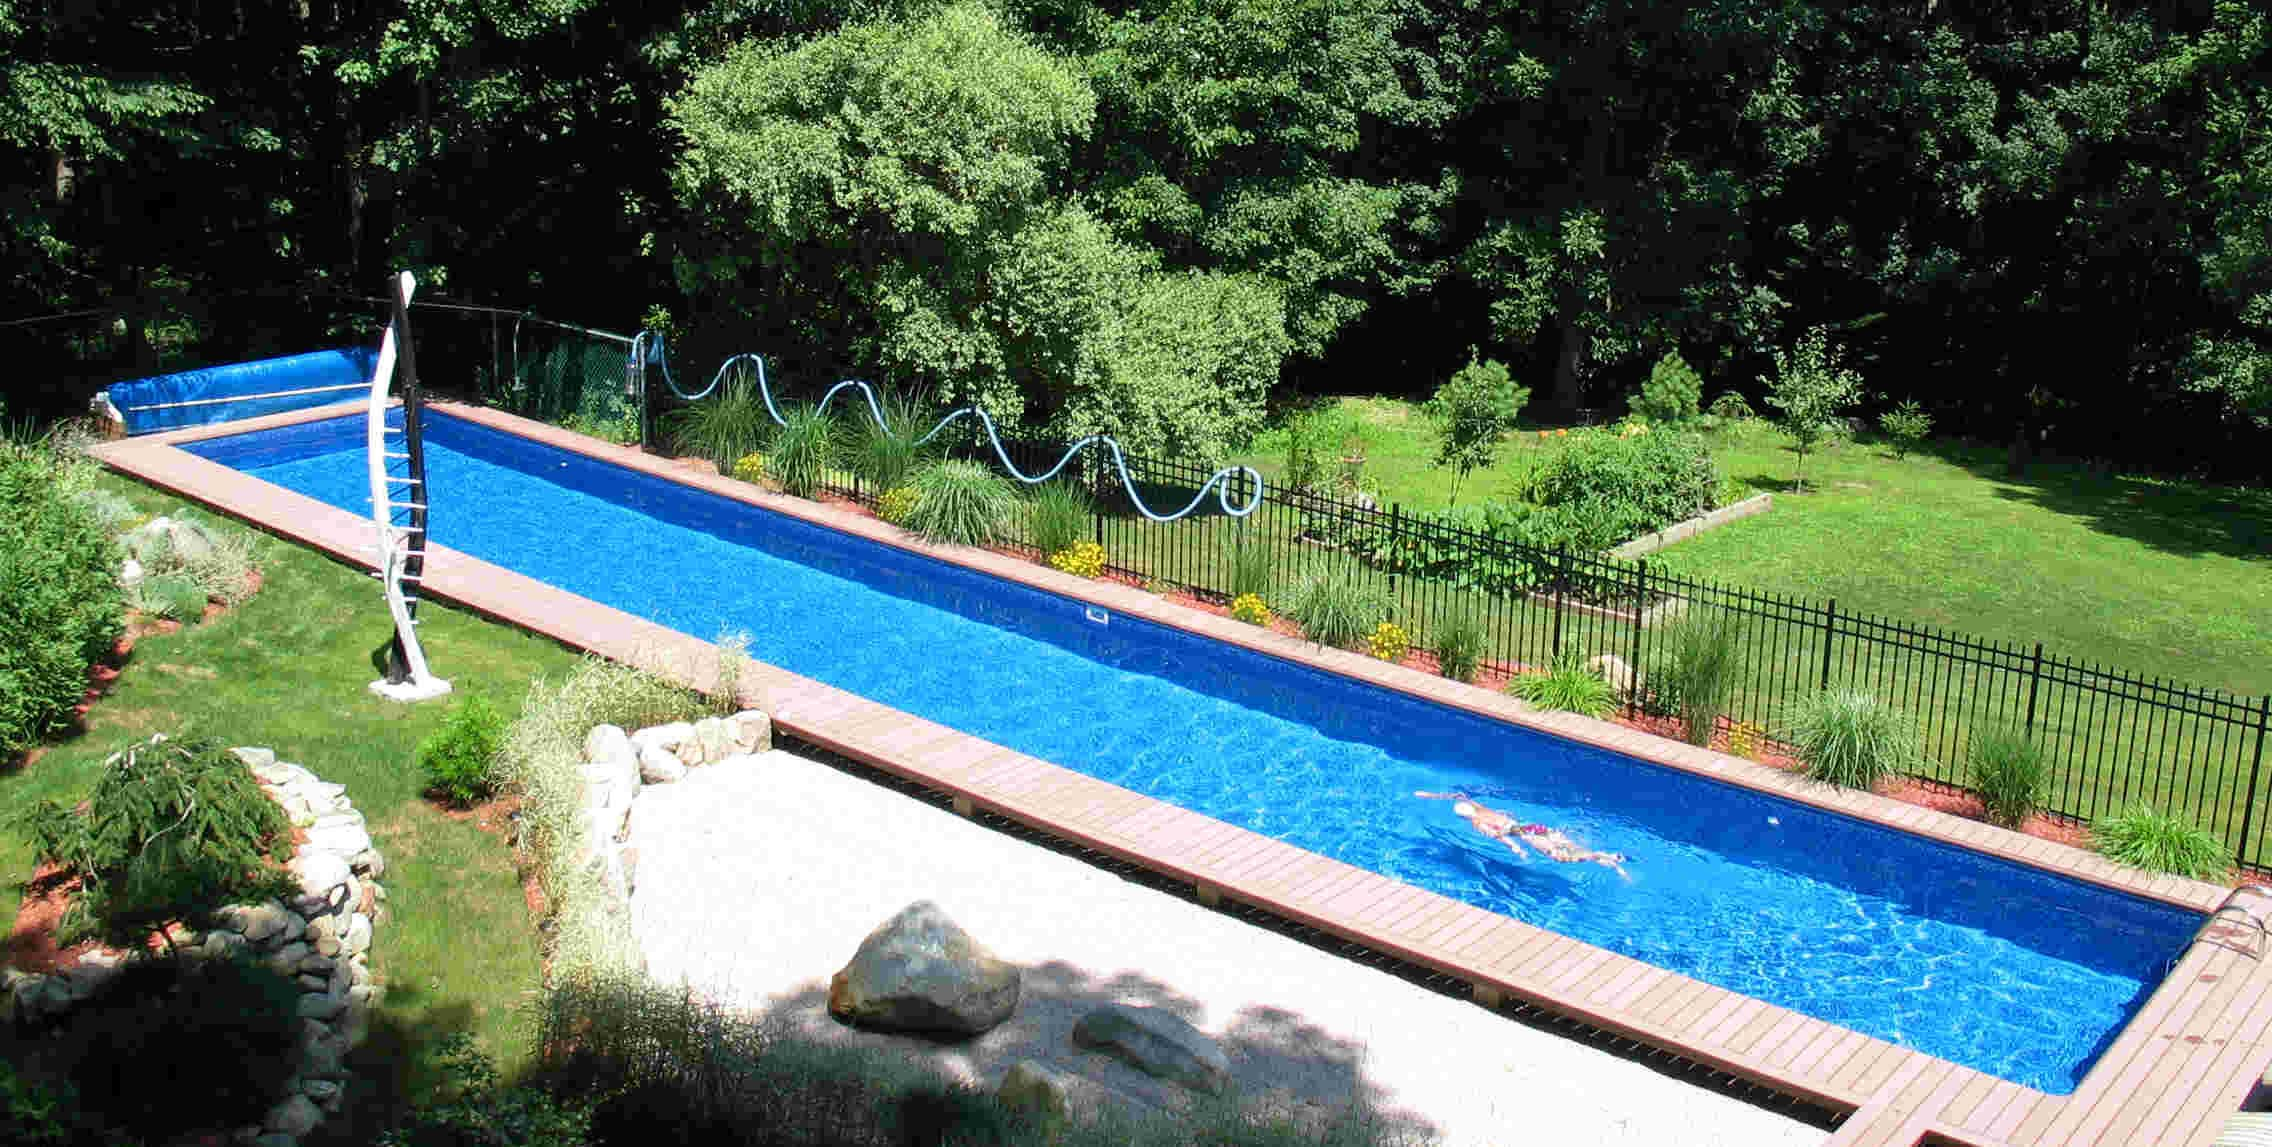 Diy inground swimming pool backyard design ideas for Images of inground swimming pools